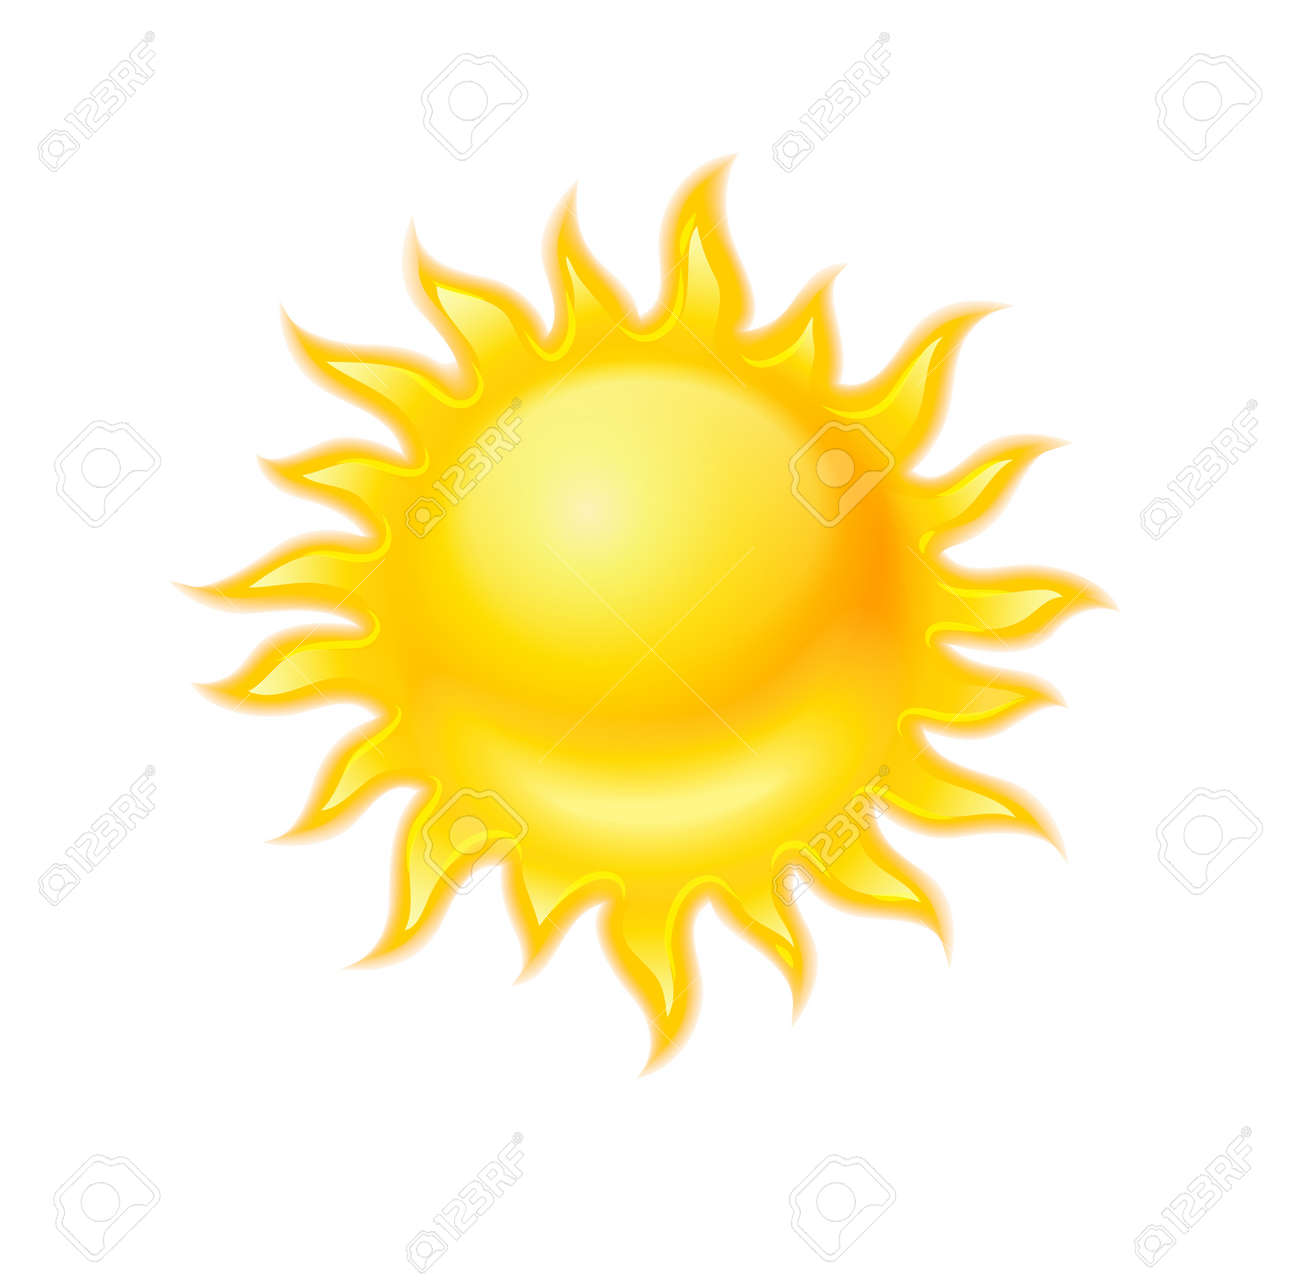 Hot yellow sun icon isolated on white background Stock Vector - 20059666